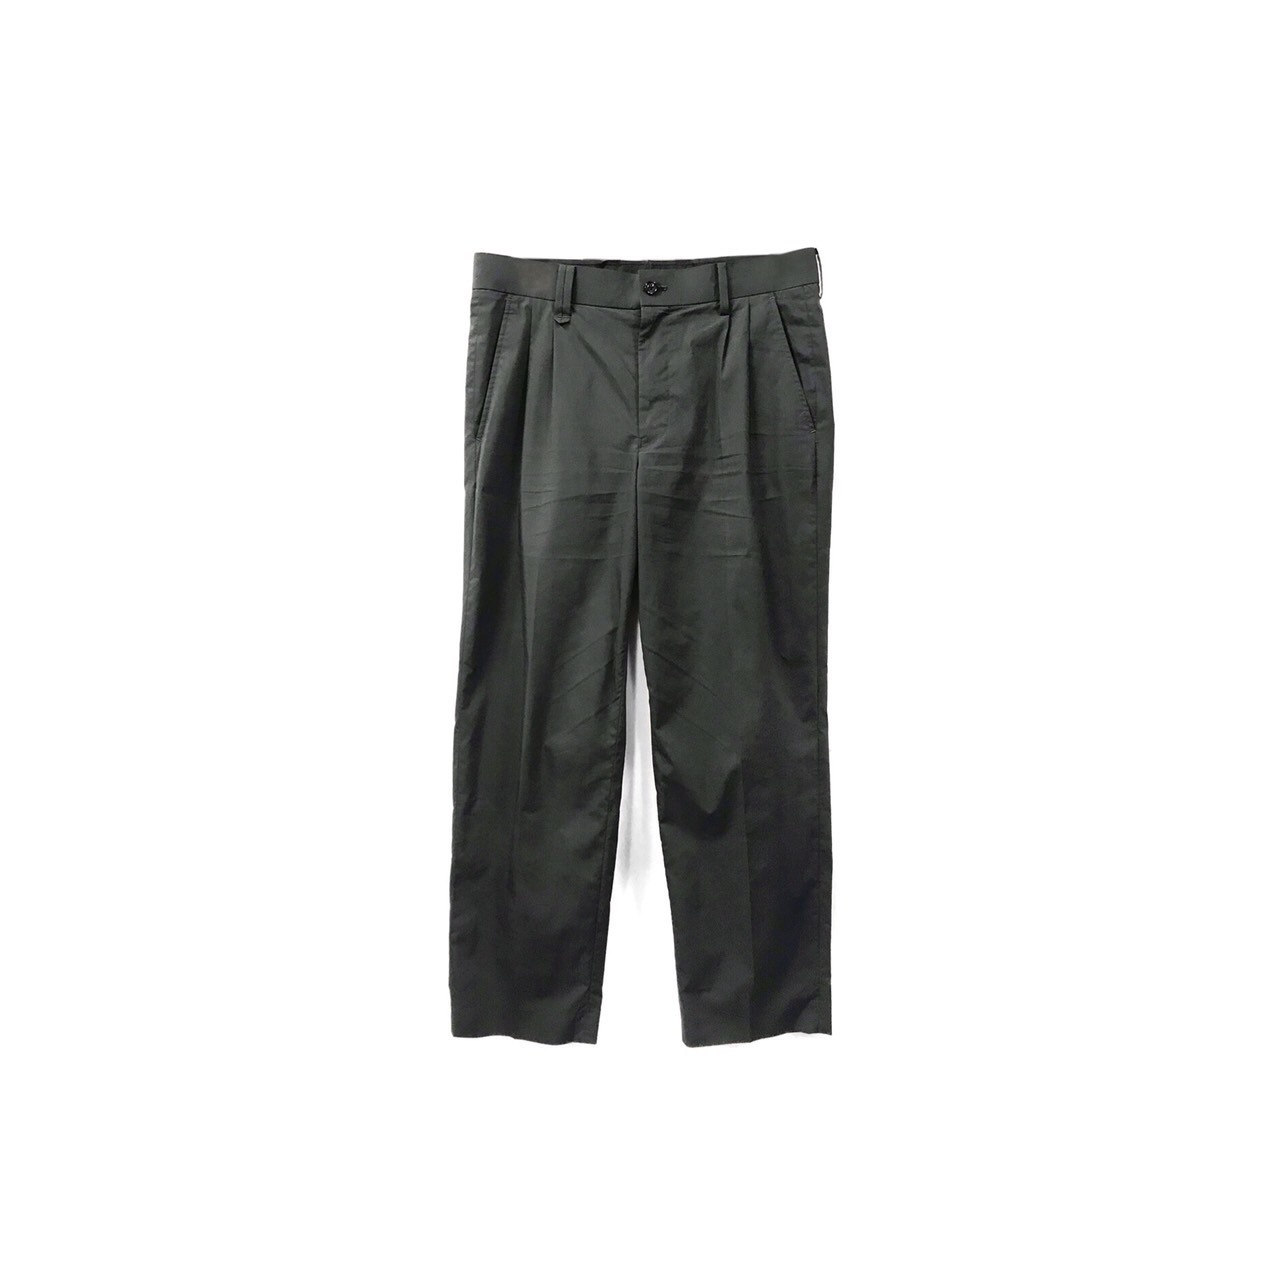 soe - Tack Pants (size - 0) ¥12000+tax